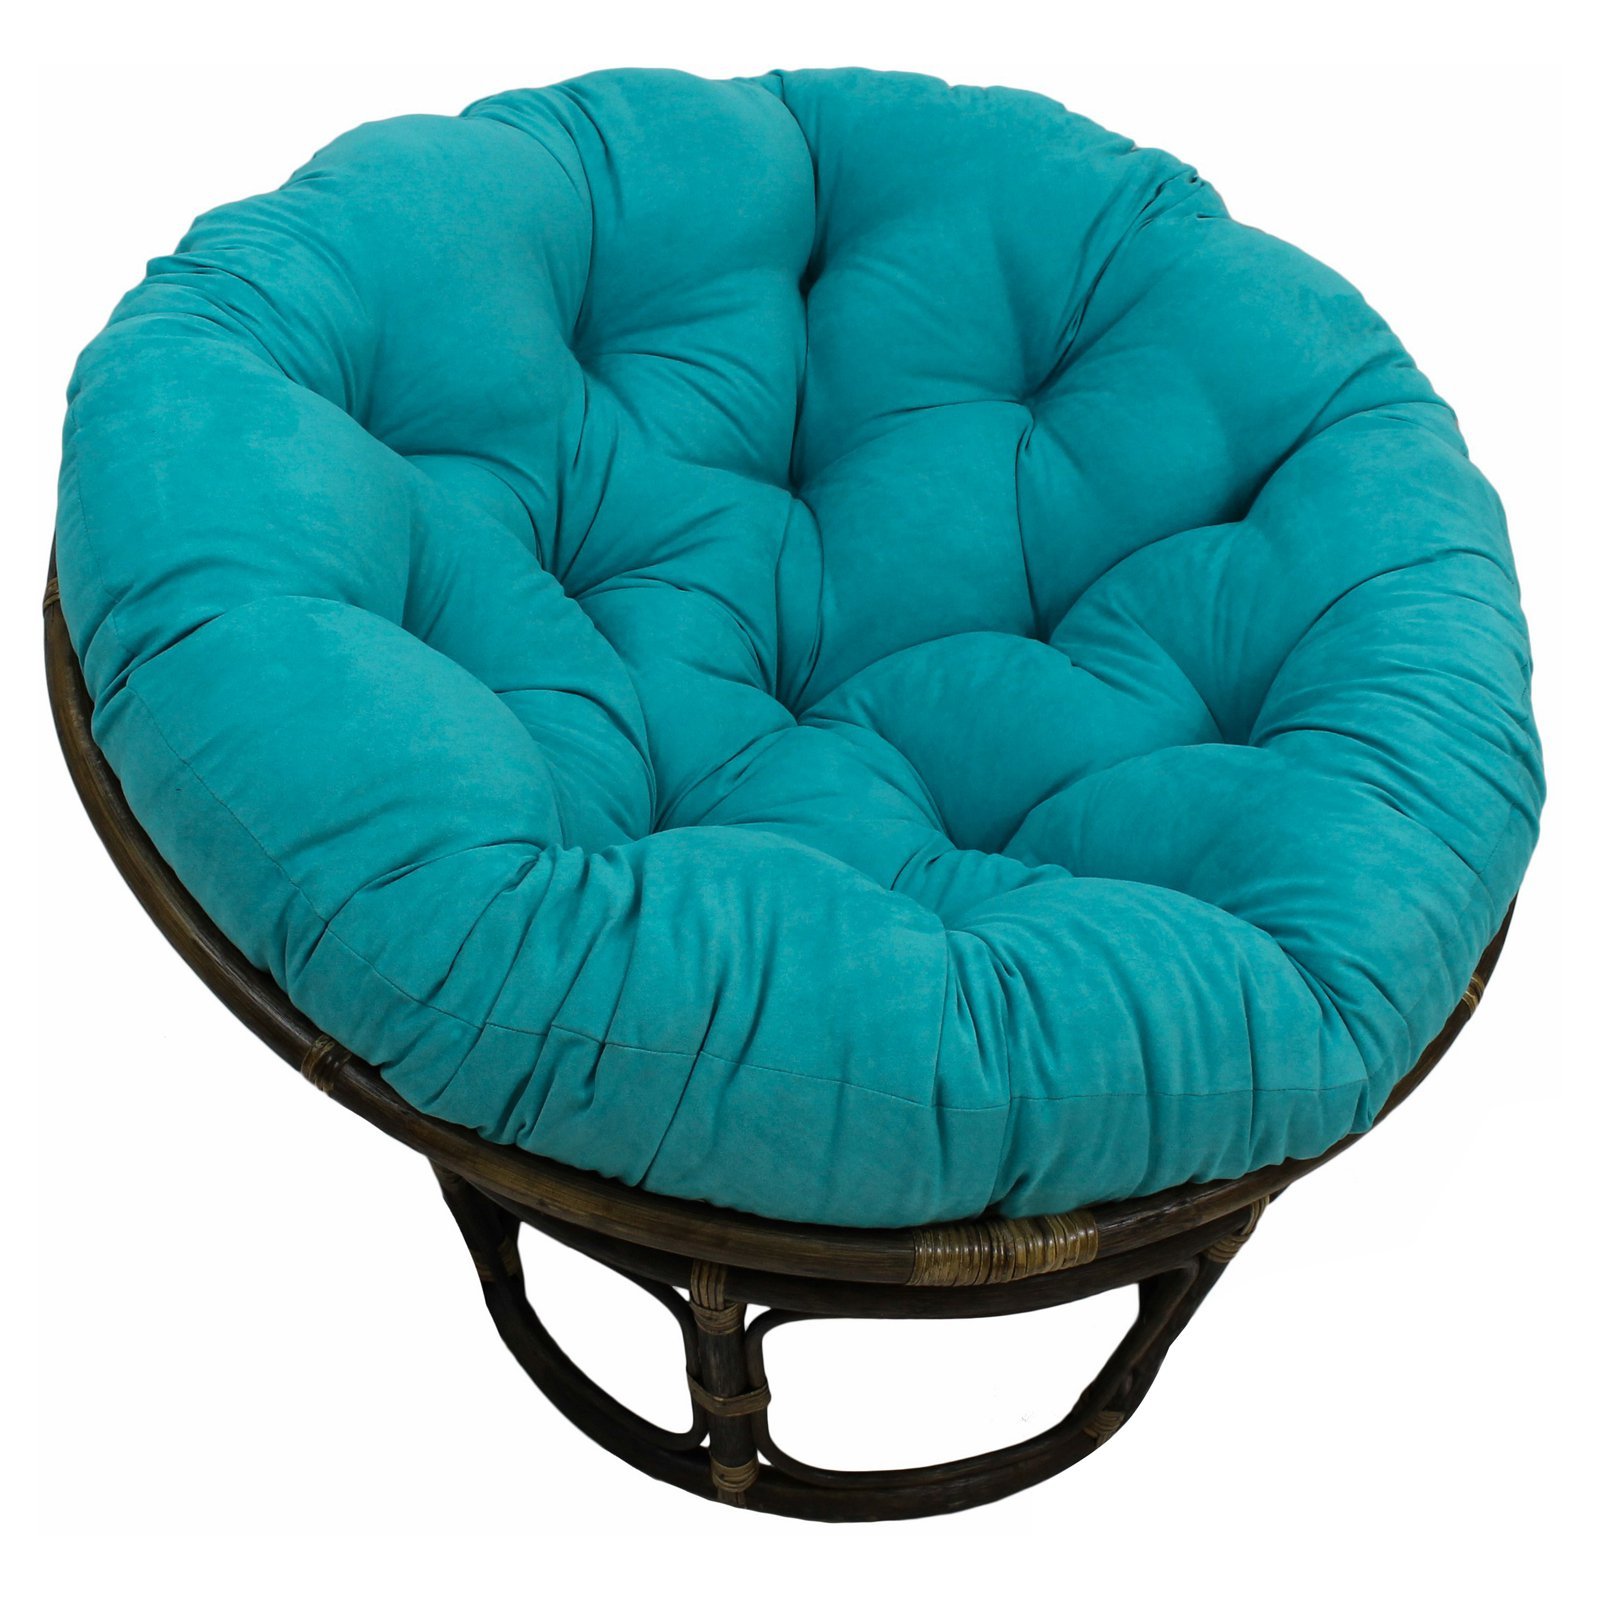 Papasan Chair Frame | Papasan Cushion | Papasan Chair Cushion